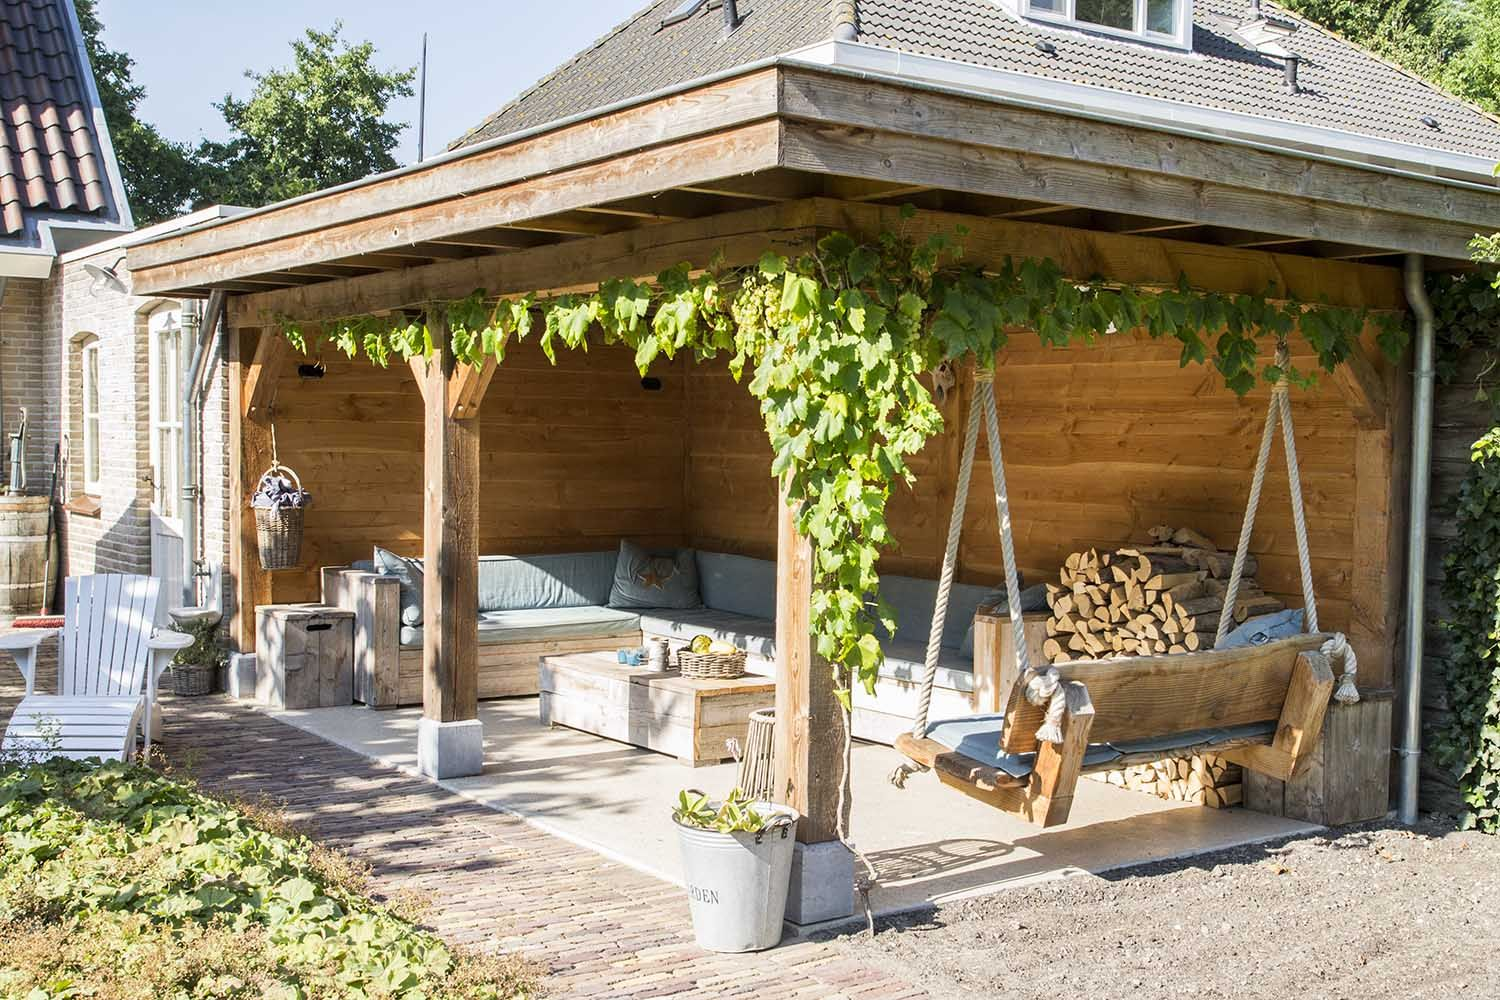 Inrichting Overkapping Tuin : Afbeeldingsresultaat voor inrichting overkapping tuin in